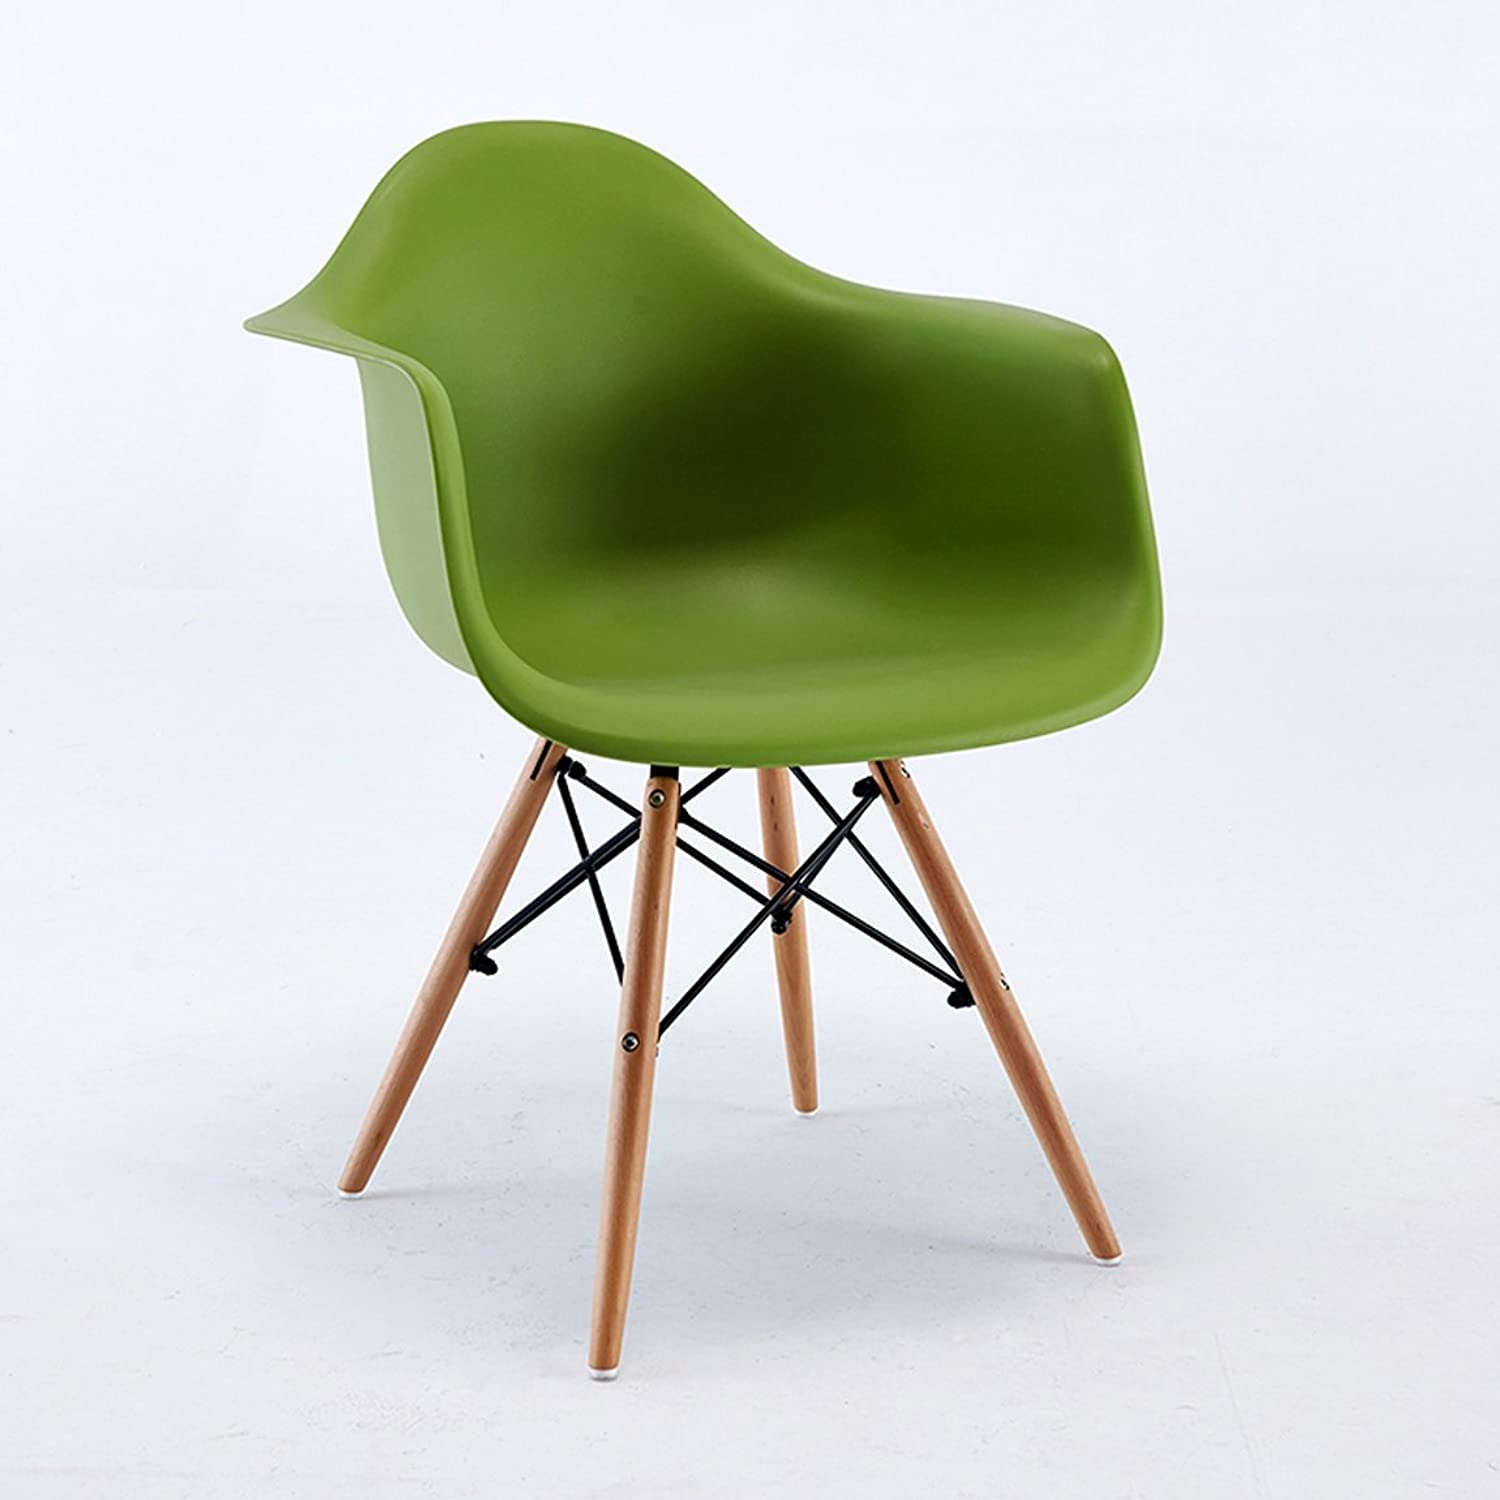 LRW European Style Home Leisure Computer Chair, Study Office Chair, Conference Chair Backrest Chair (color   Green)